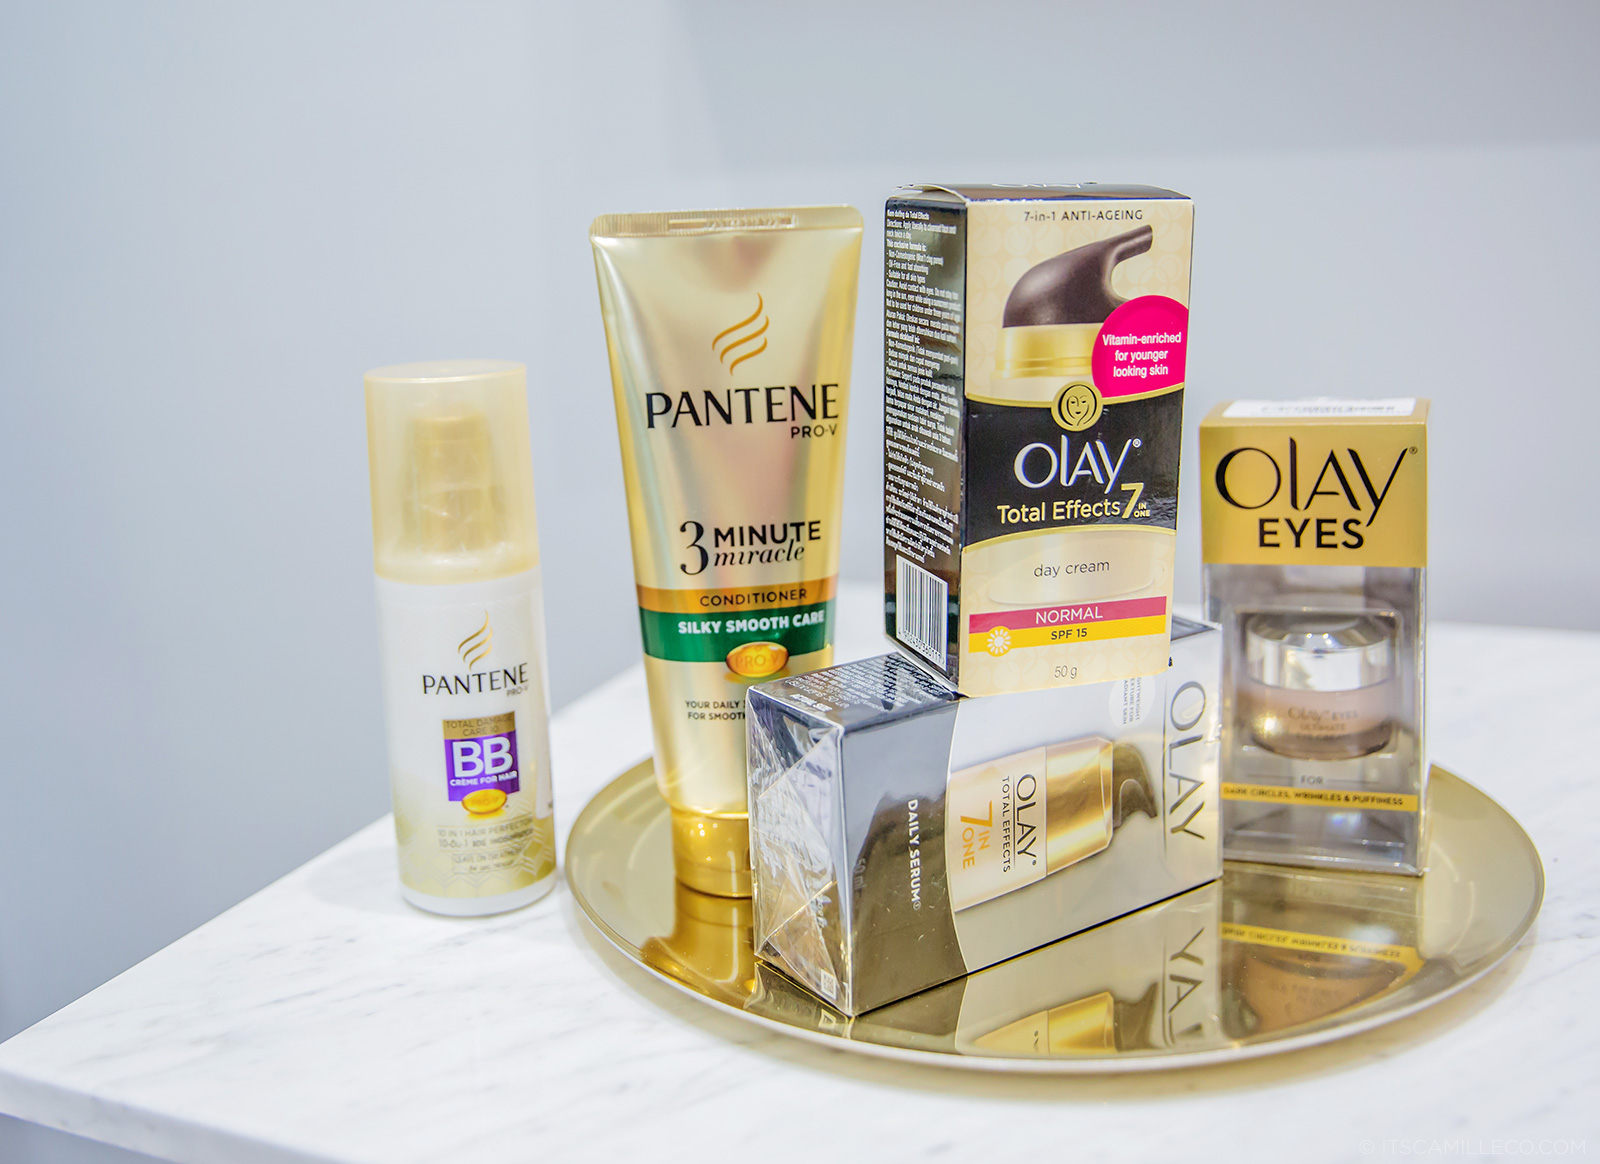 Pantene and Olay Haul